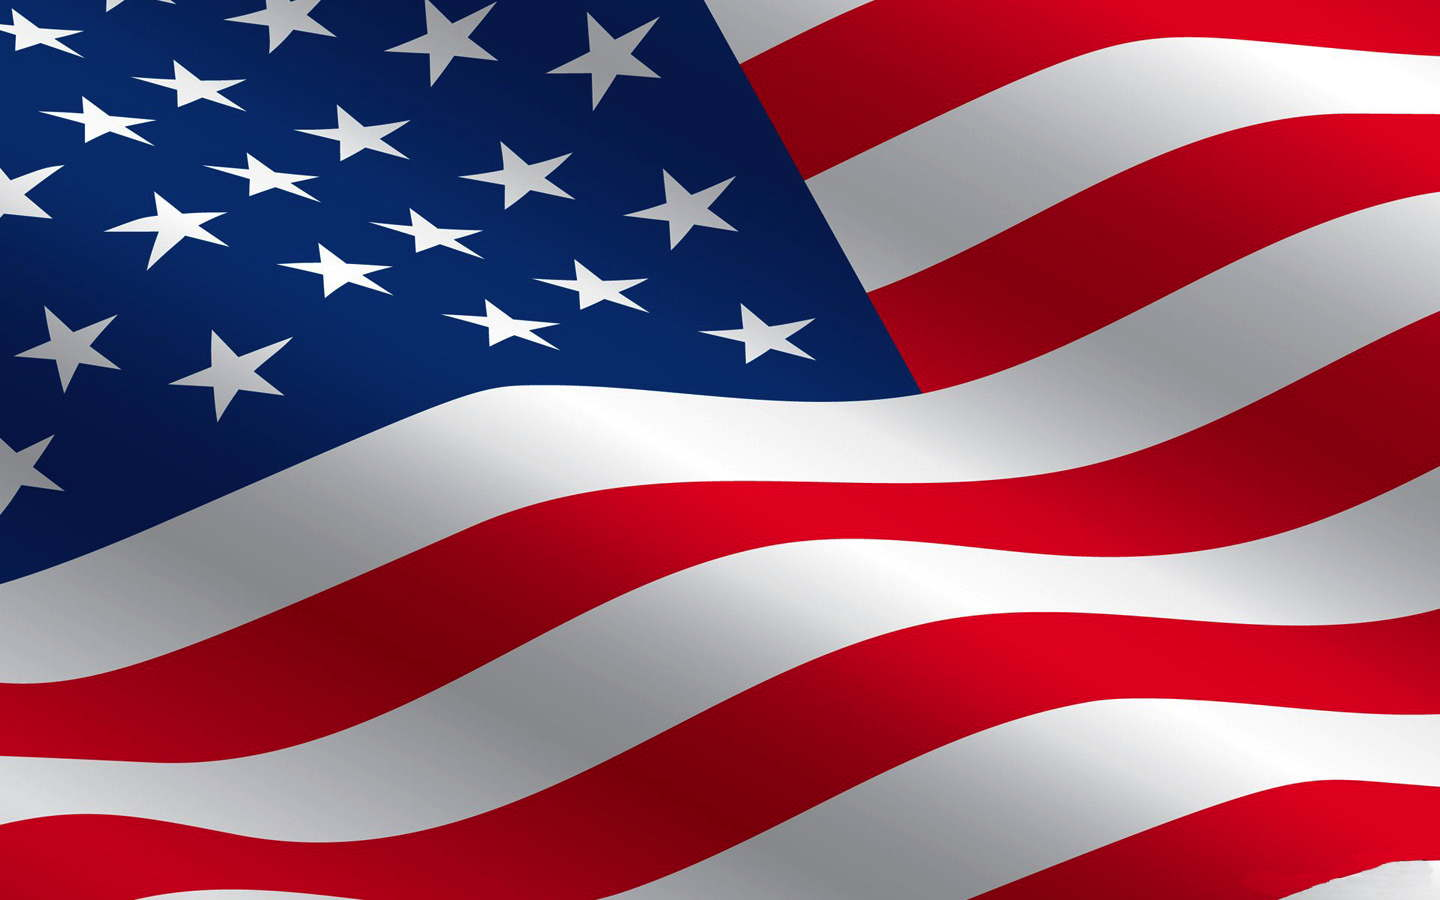 waving american flag hd background wallpaper free